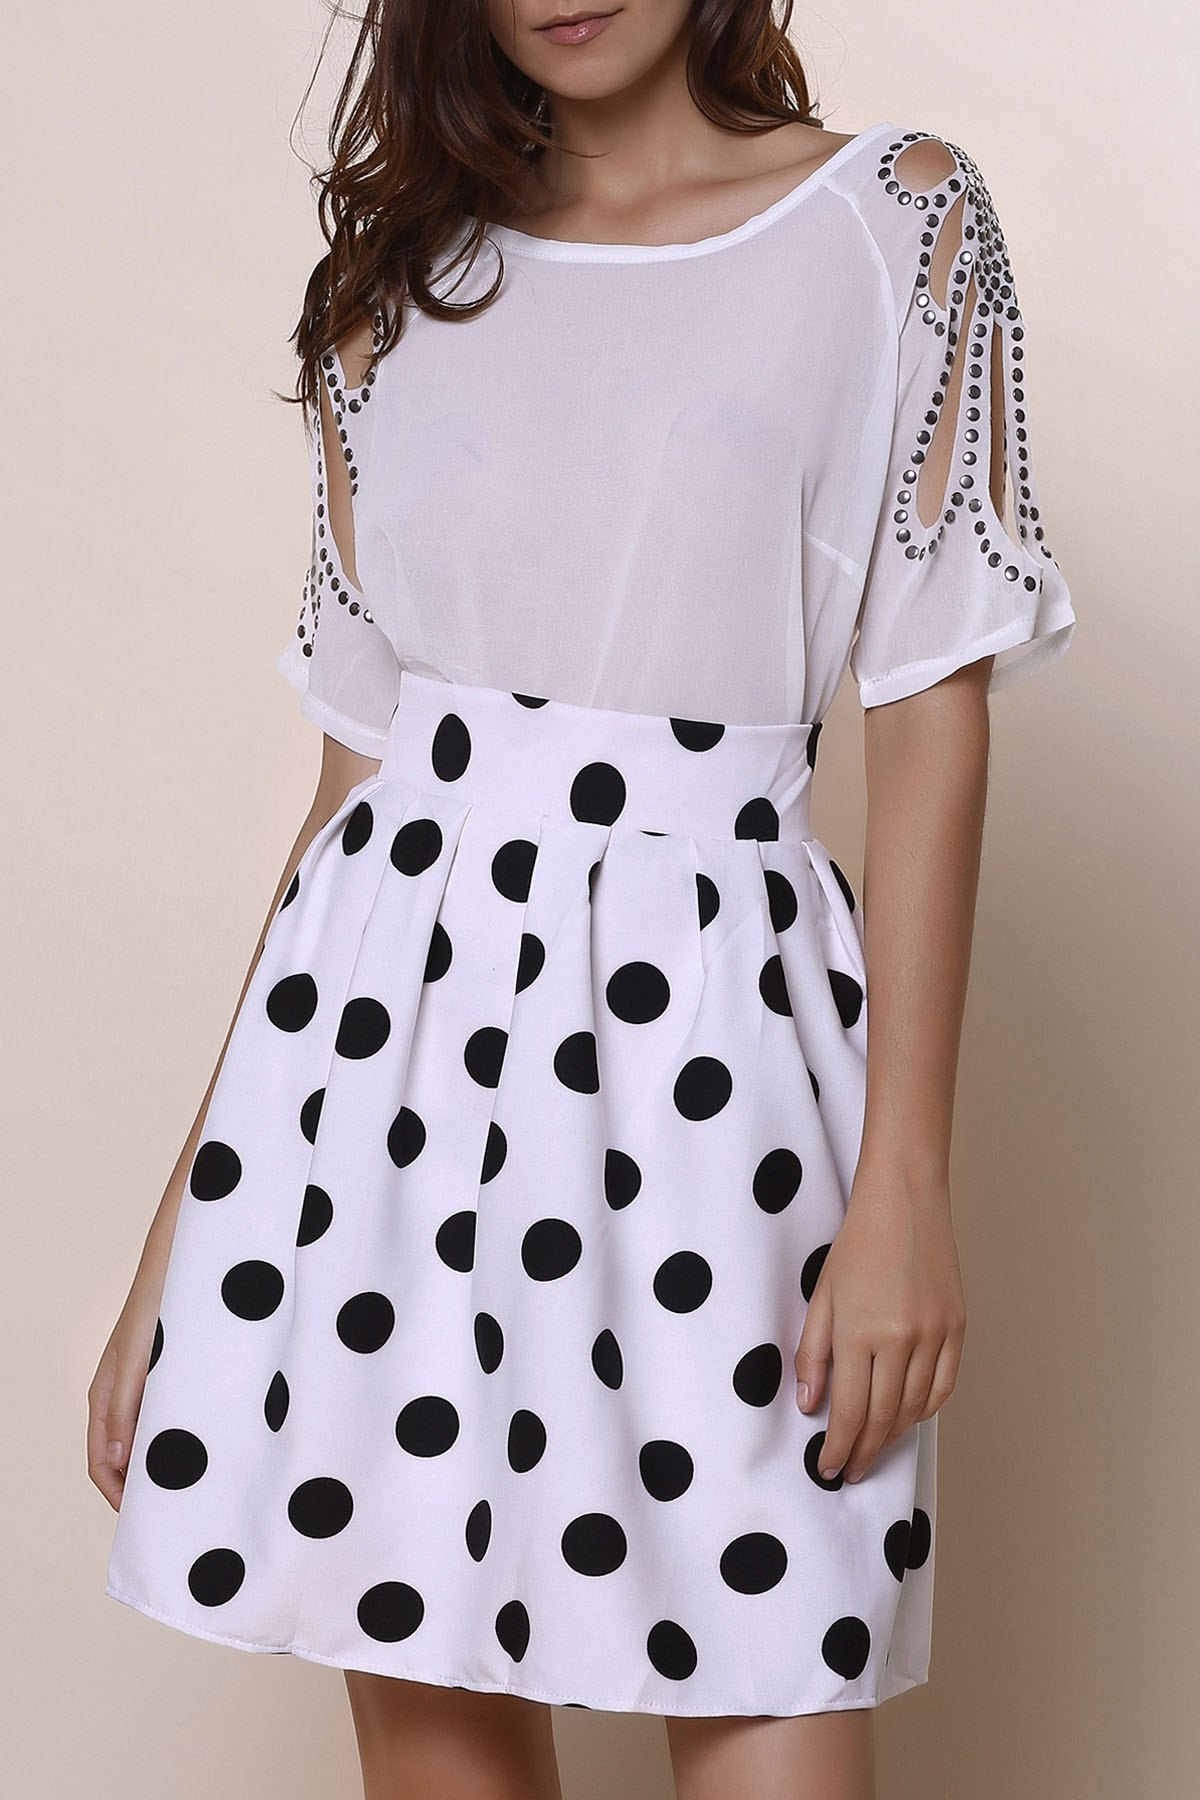 Vintage High-Waisted Ruffled Polka Dot Women's Skirt - WHITE/BLACK L